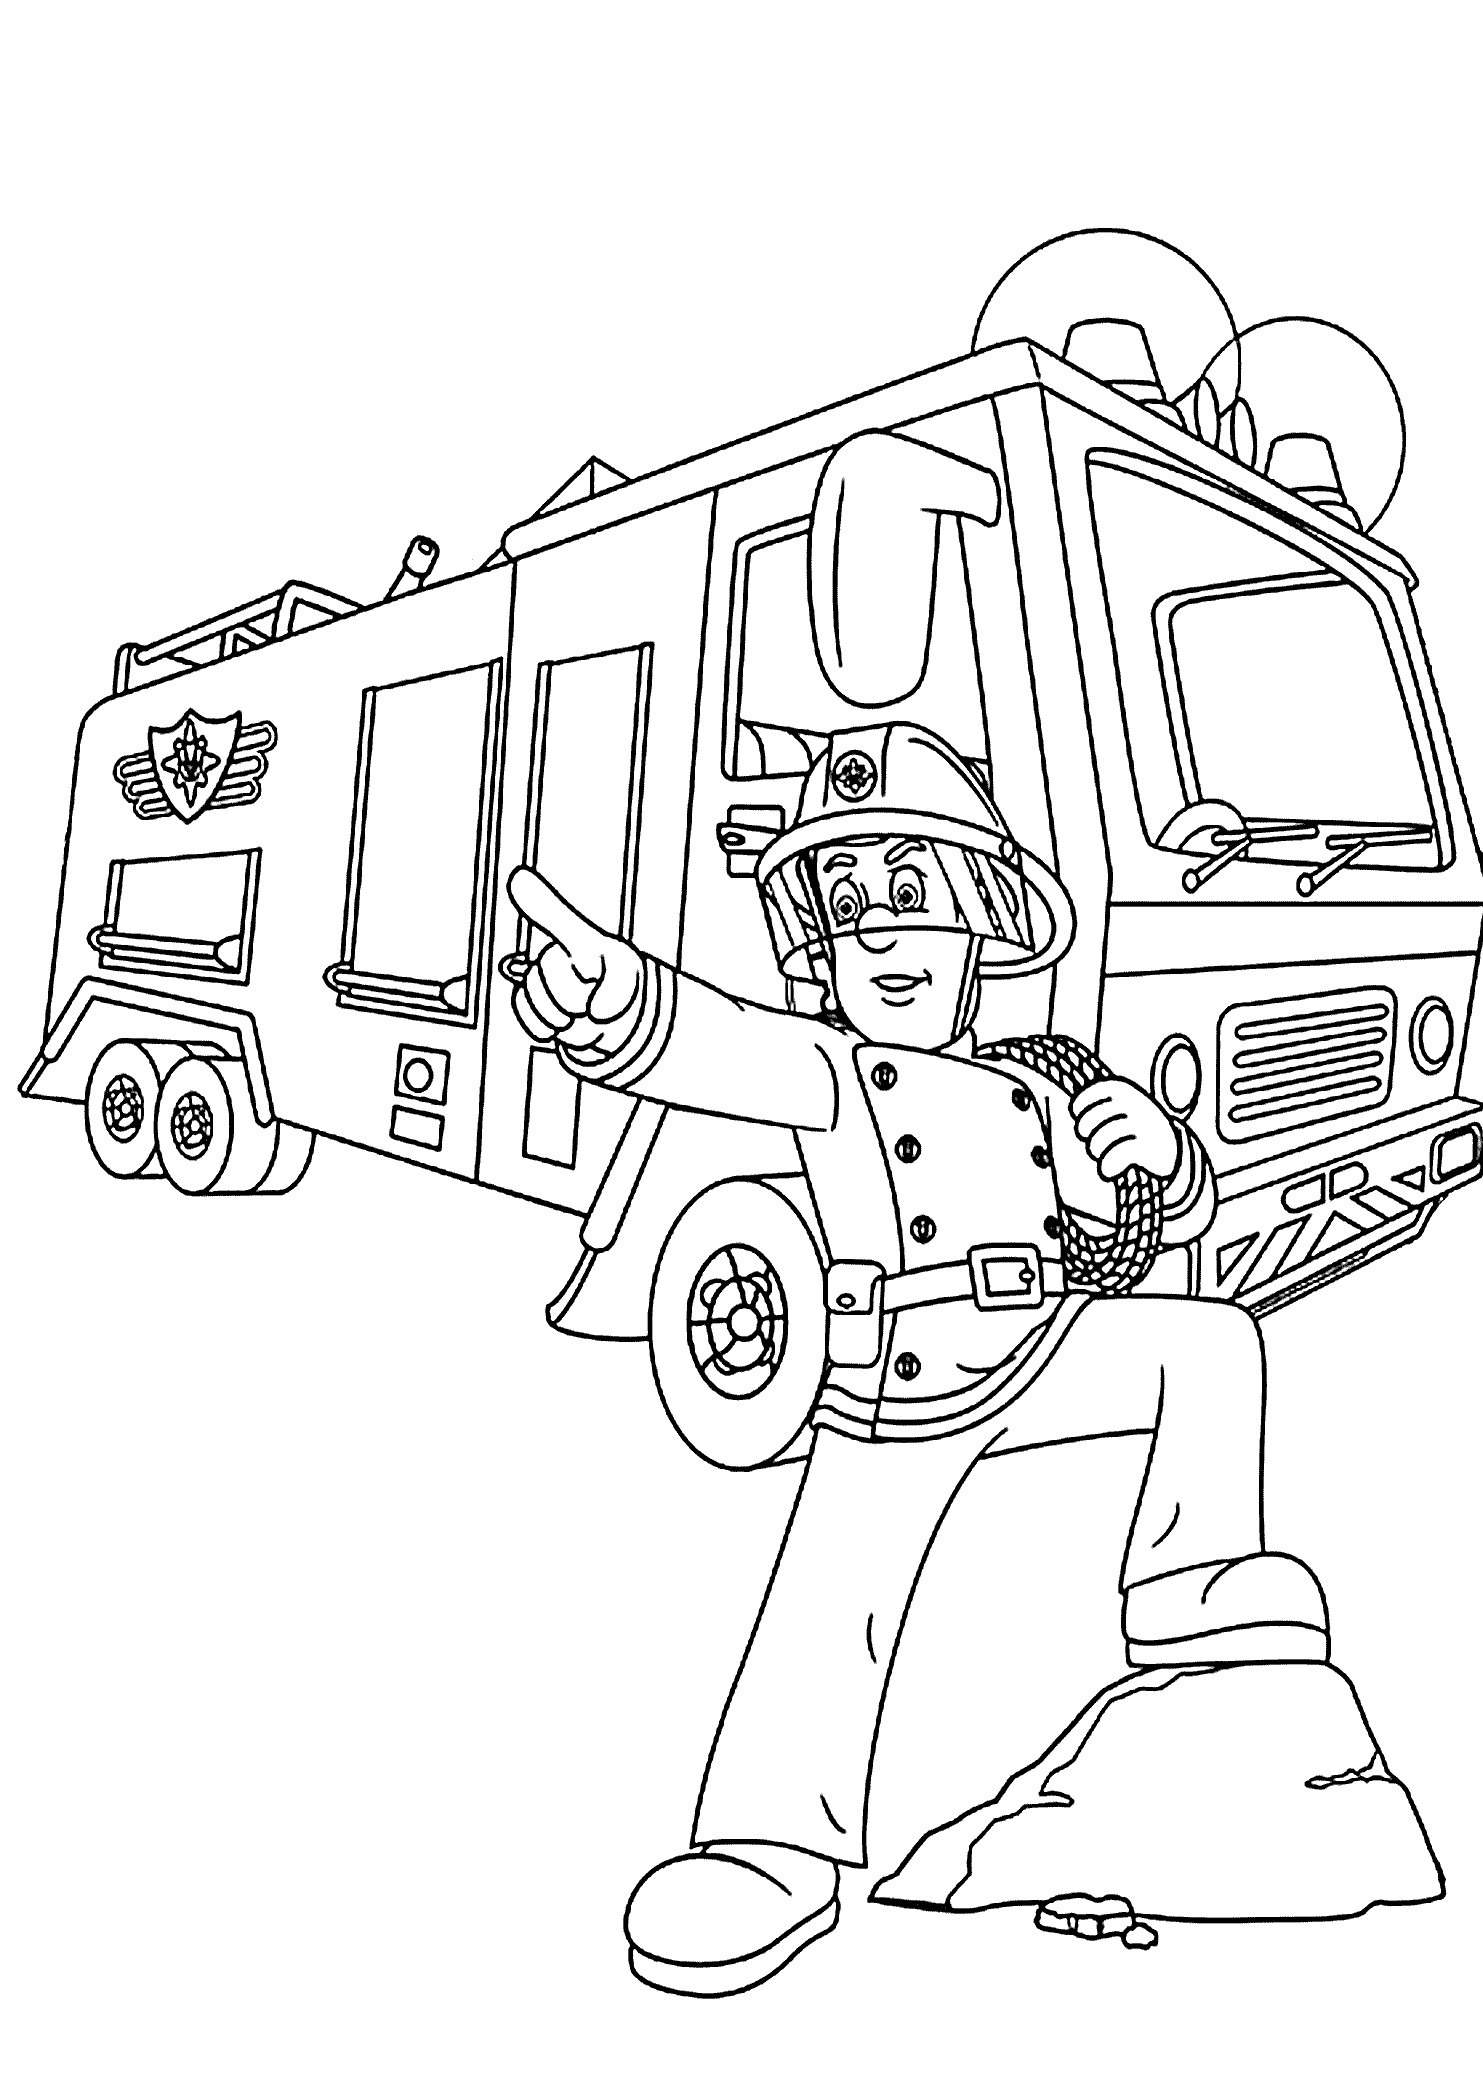 coloring page fire truck simple fire truck coloring pages at getcoloringscom fire page coloring truck